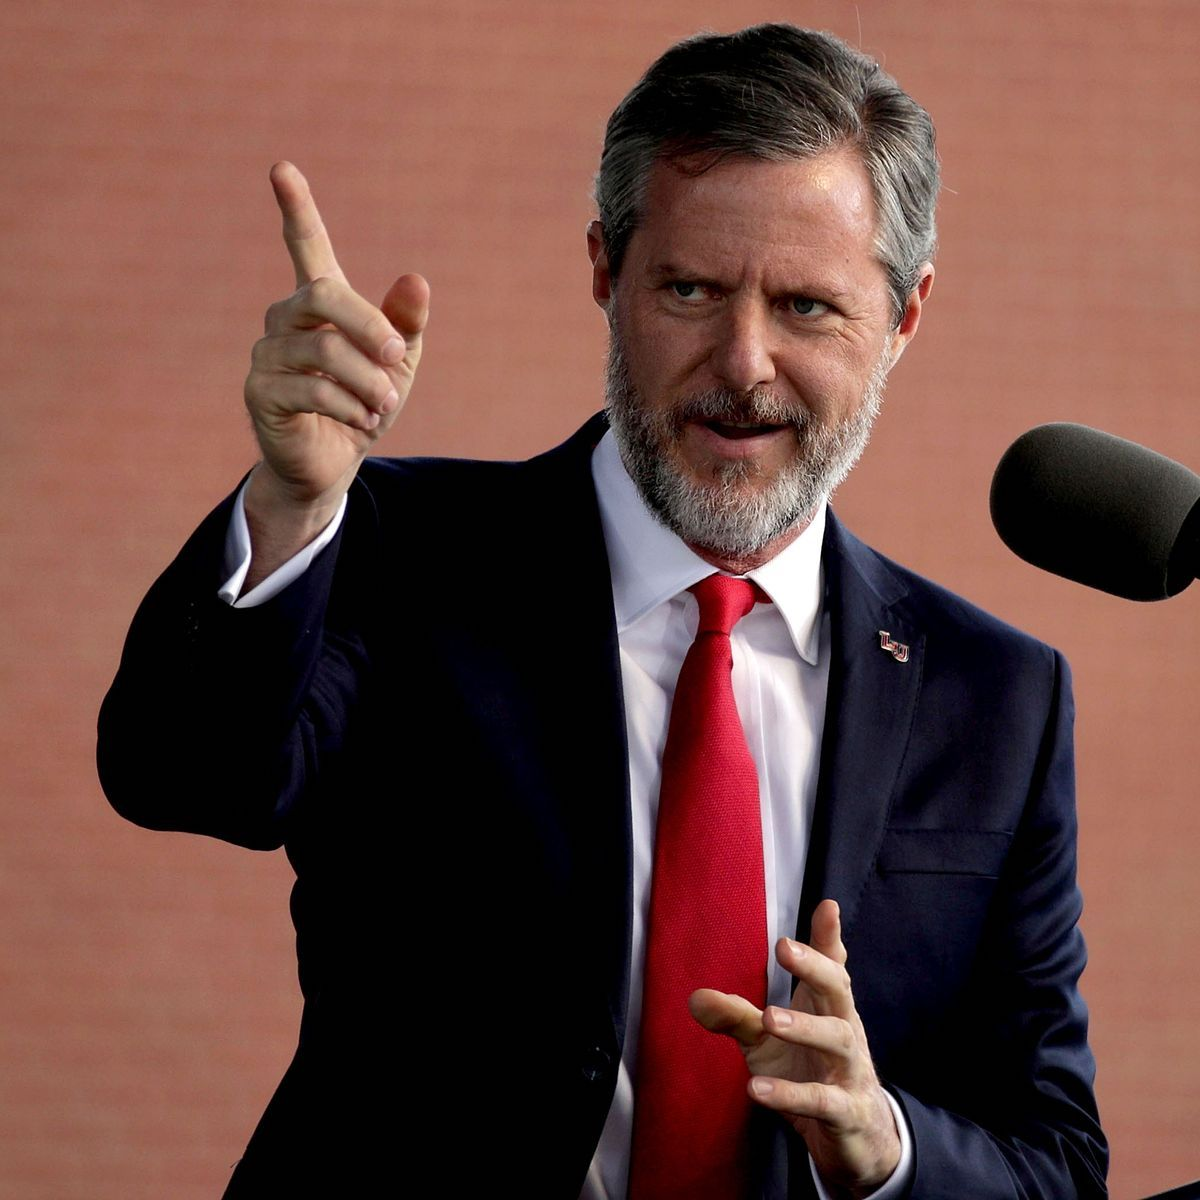 Former Liberty University President Jerry Falwell Jr. officially resigned as a result of an alleged sex scandal. Here's what we know.